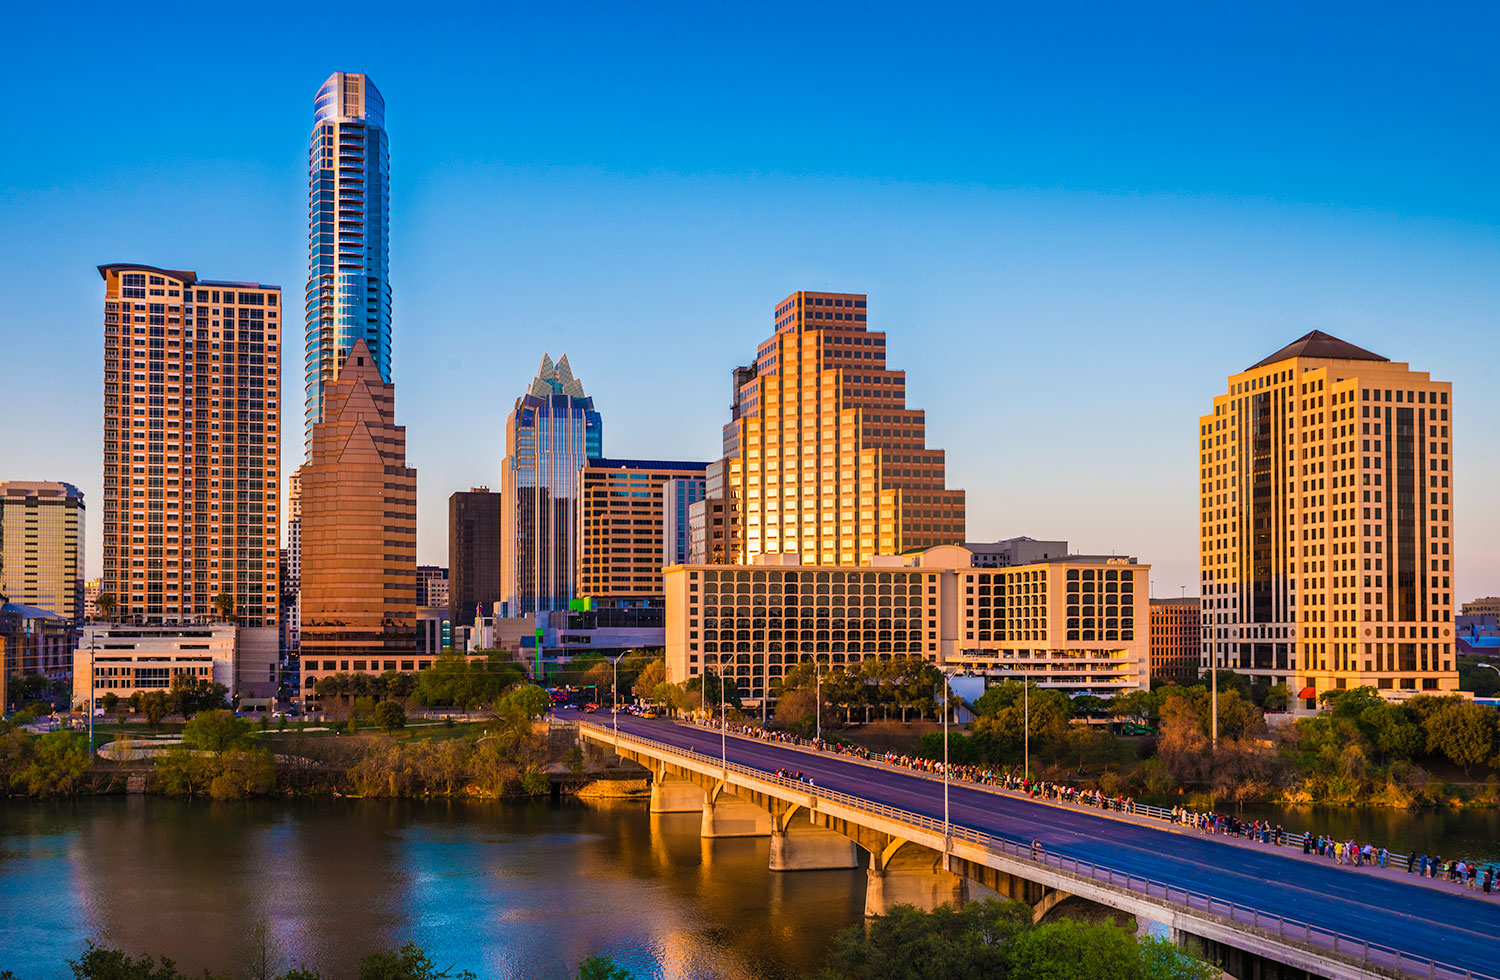 Image of Austin Texas. Scion Staffing has a location in Austin